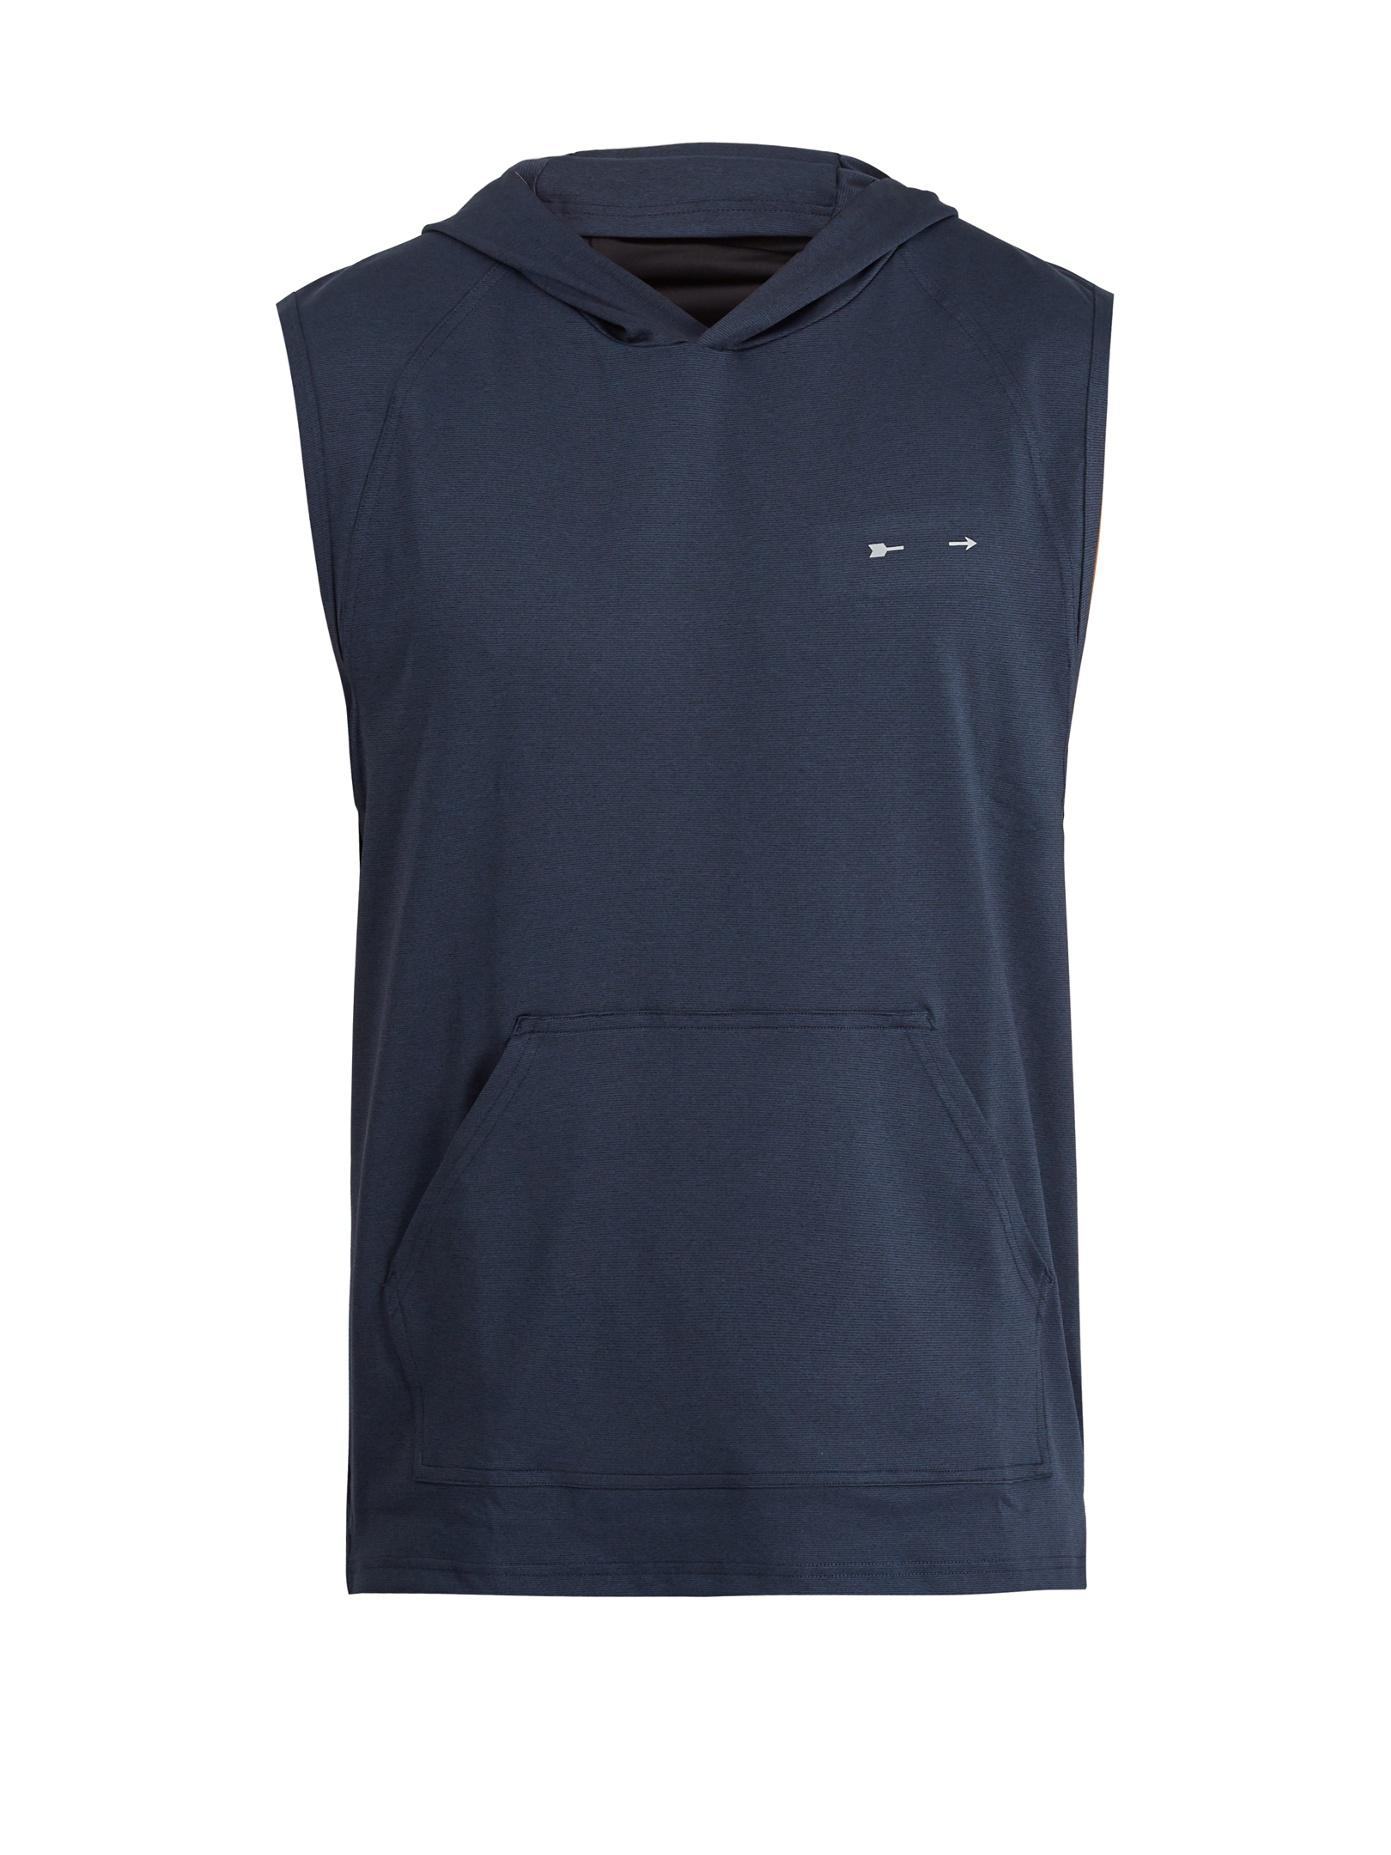 PS Trainer sleeveless hooded sweatshirt The Upside Pick A Best Cheap Online JWWkSAQr